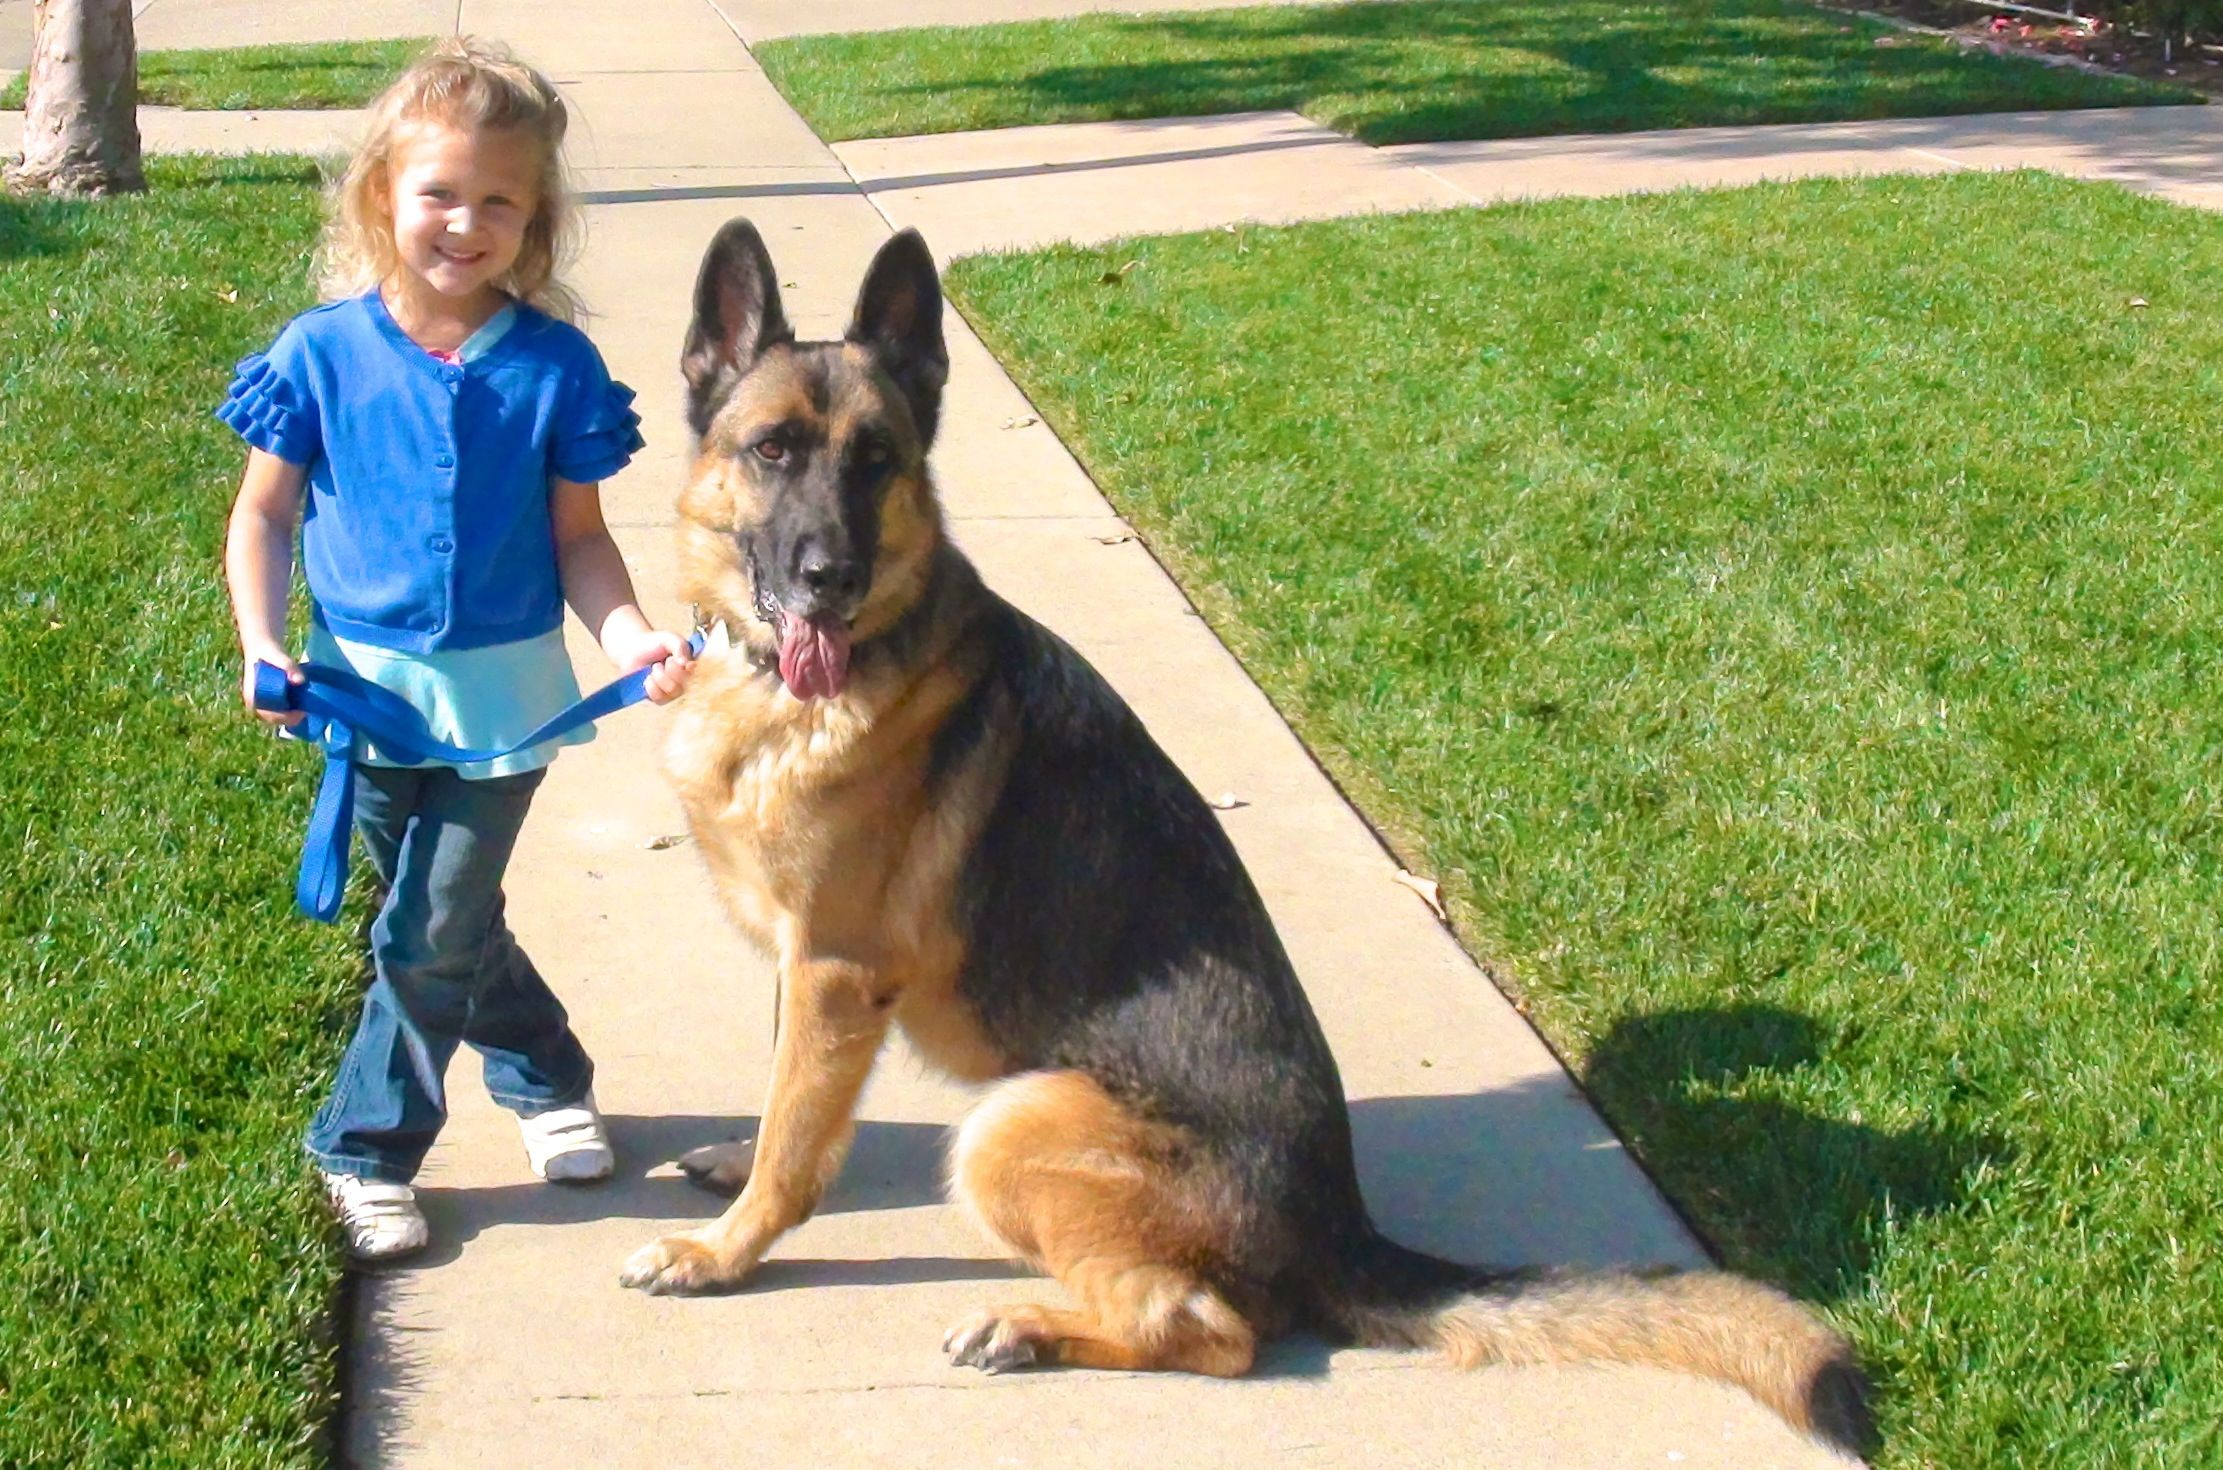 4 Year Old Dog Trainer With A Matching Leash Dogs Old Dogs